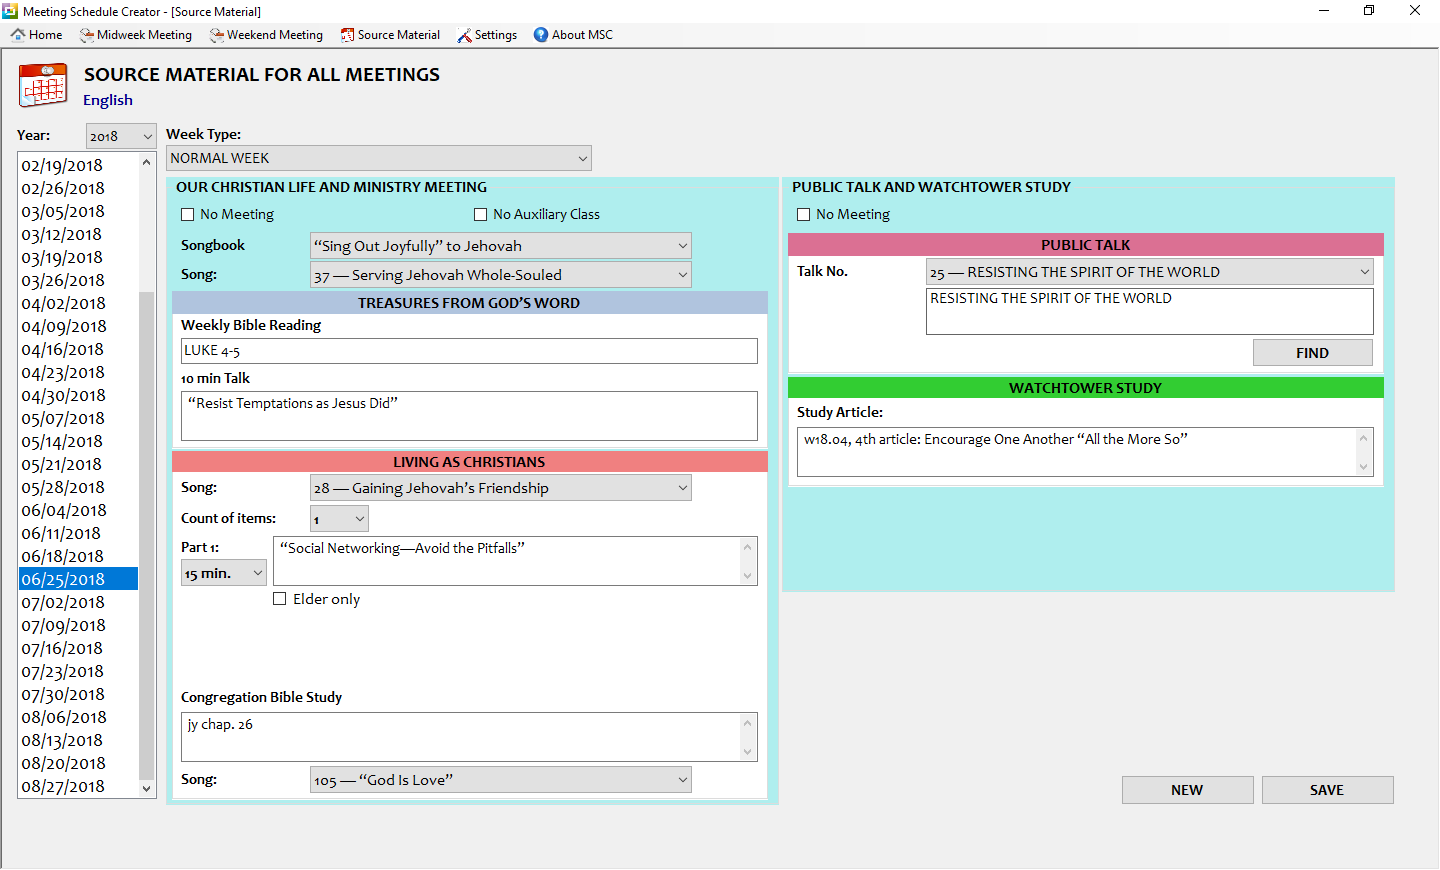 Downloads - Meeting Schedule Creator - ToolsLib